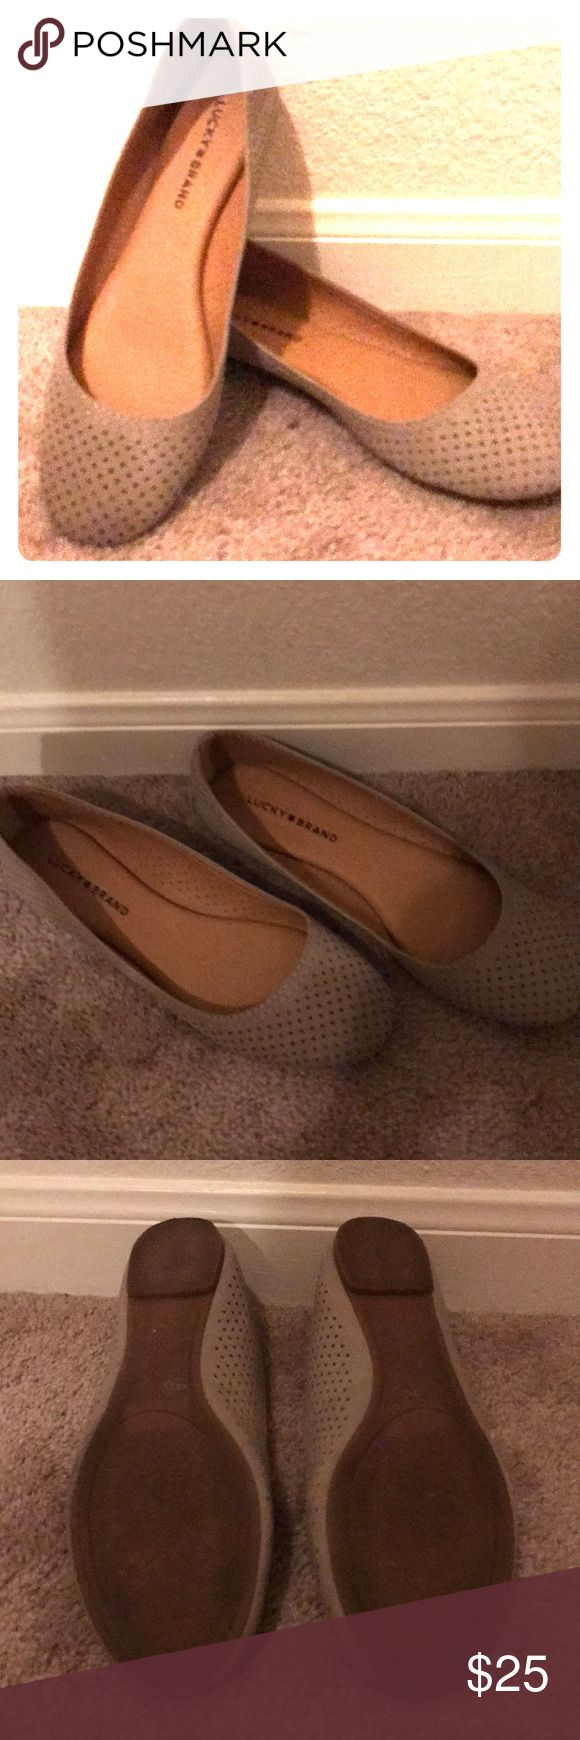 Lucky Brand flats Taupe very gently worn lucky brand flats. Worn 2x. Very comfy!! Lucky Brand Shoes Flats & Loafers